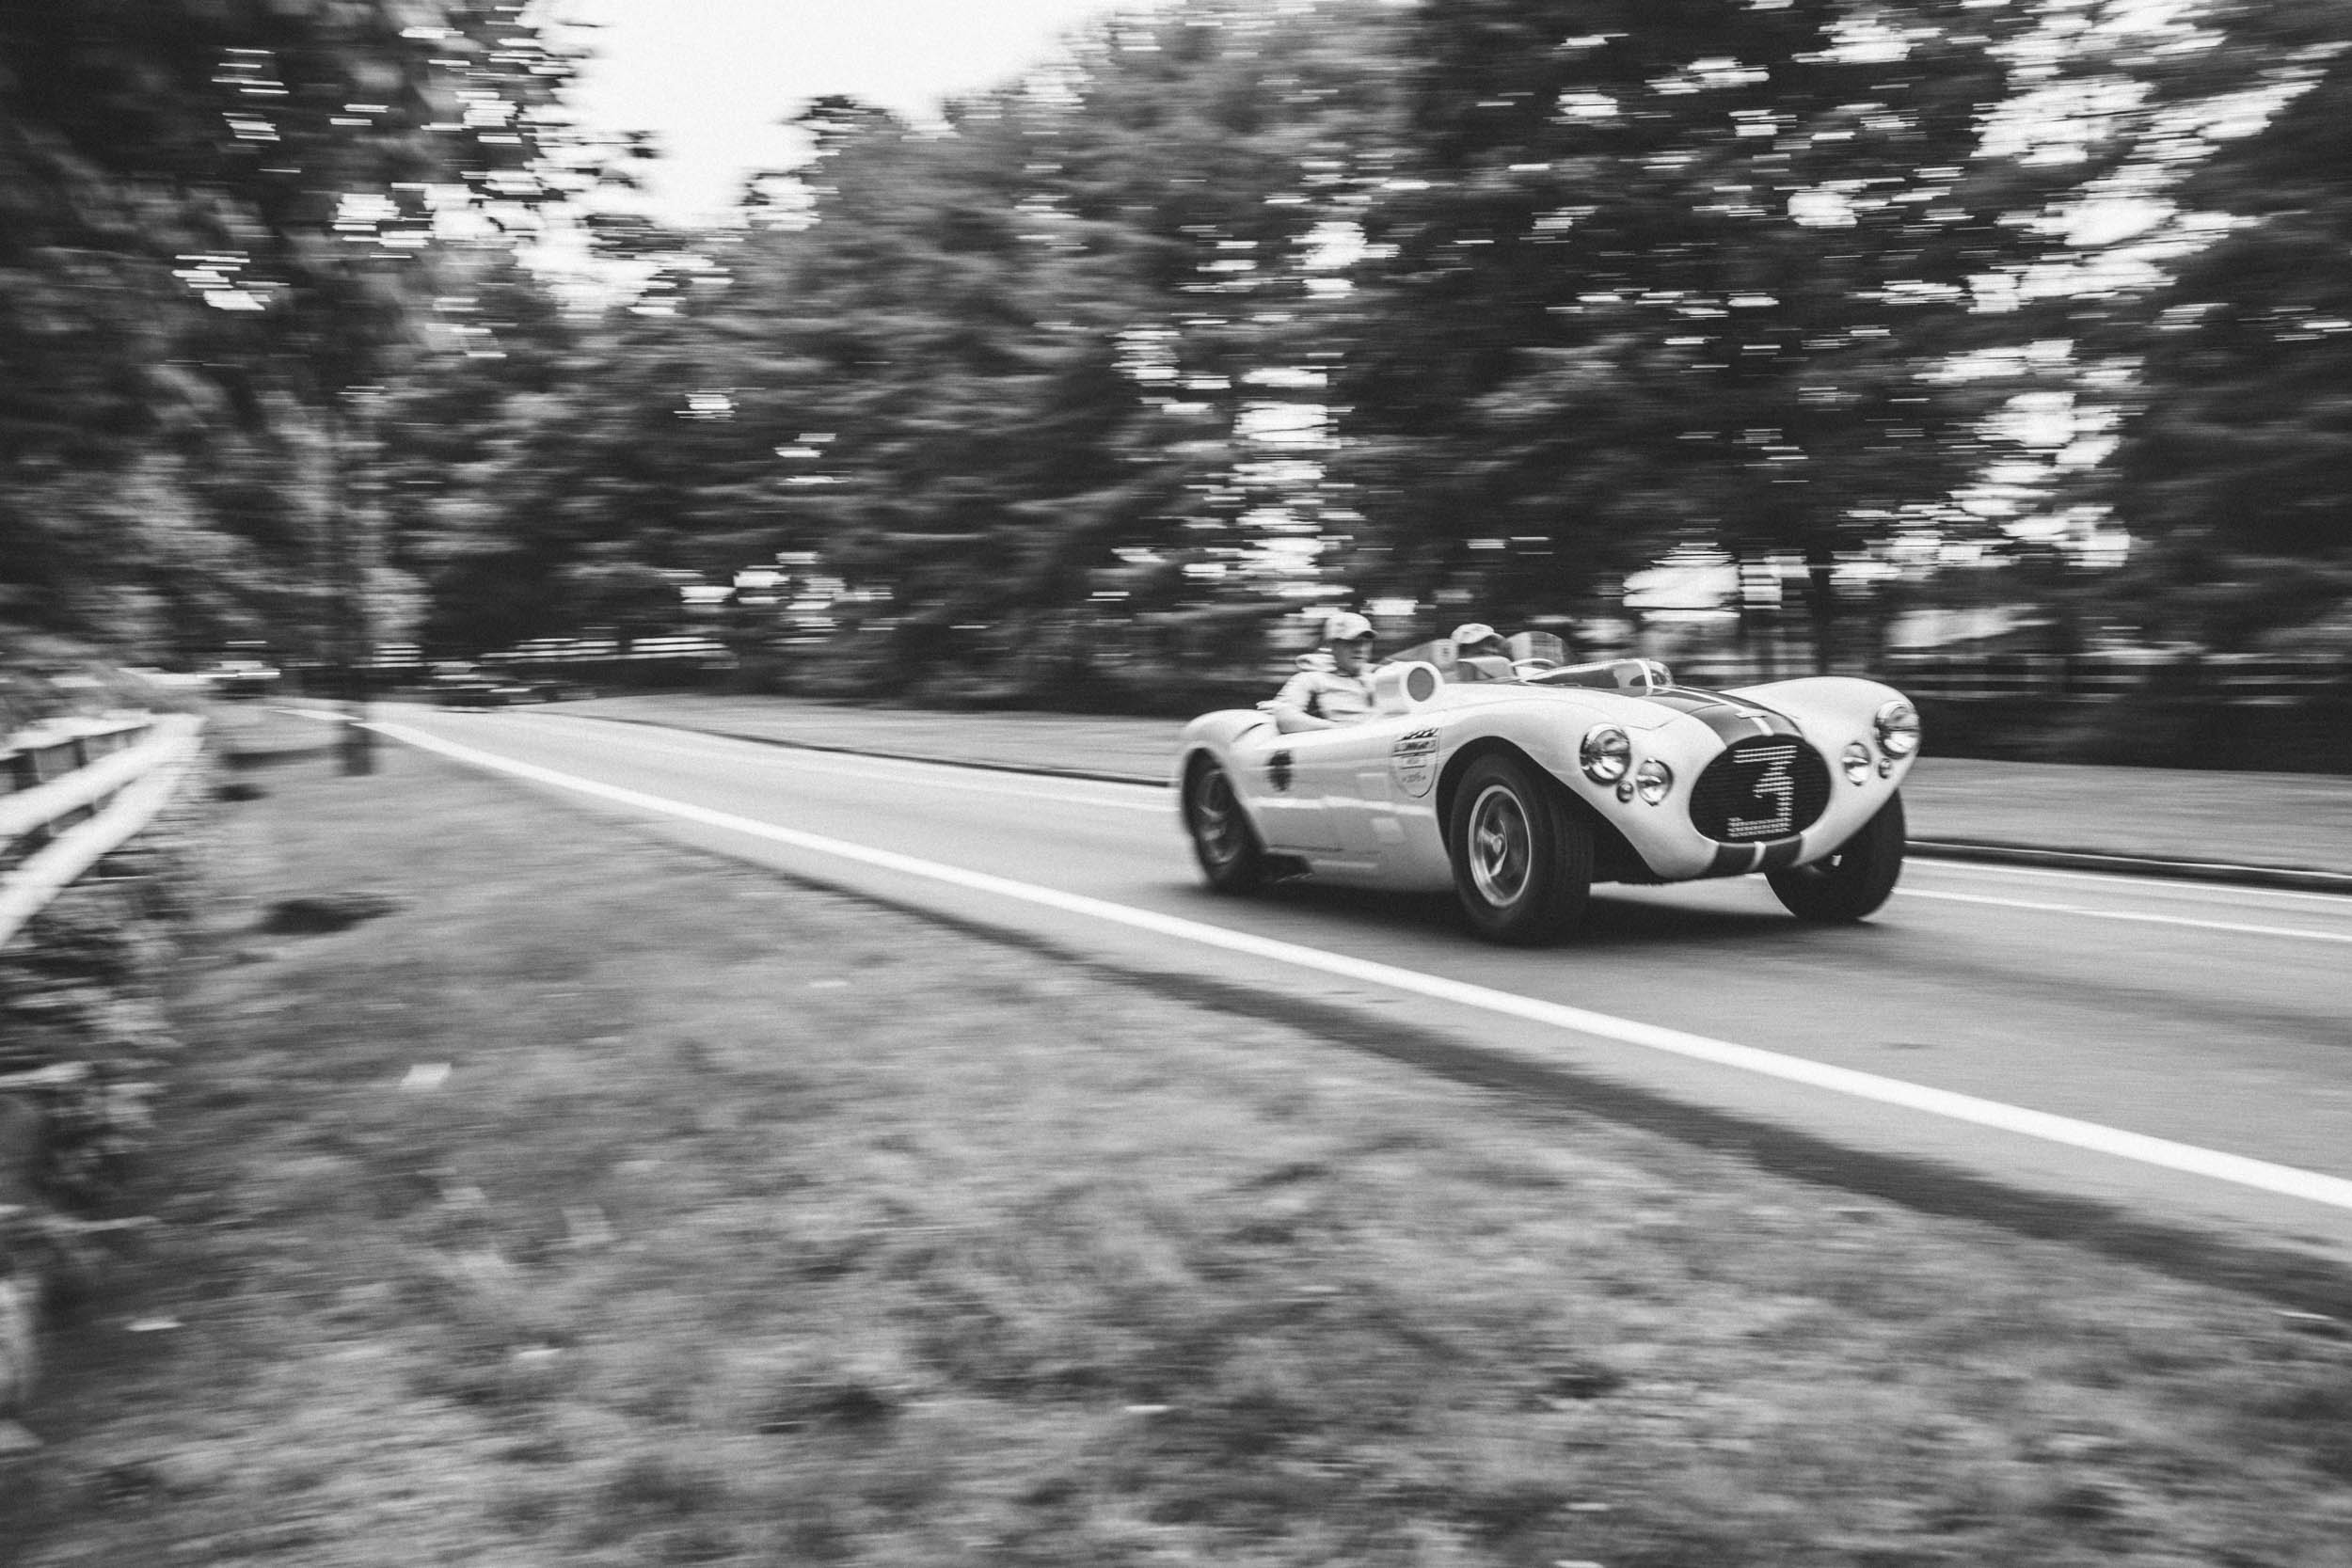 """The '54 Le Mans effort included this C4R, which had engine trouble. At Le Mans, Briggs said, """"It's not a question of how fast you go but how slow you dare to go to save the motor and still keep your standing."""""""